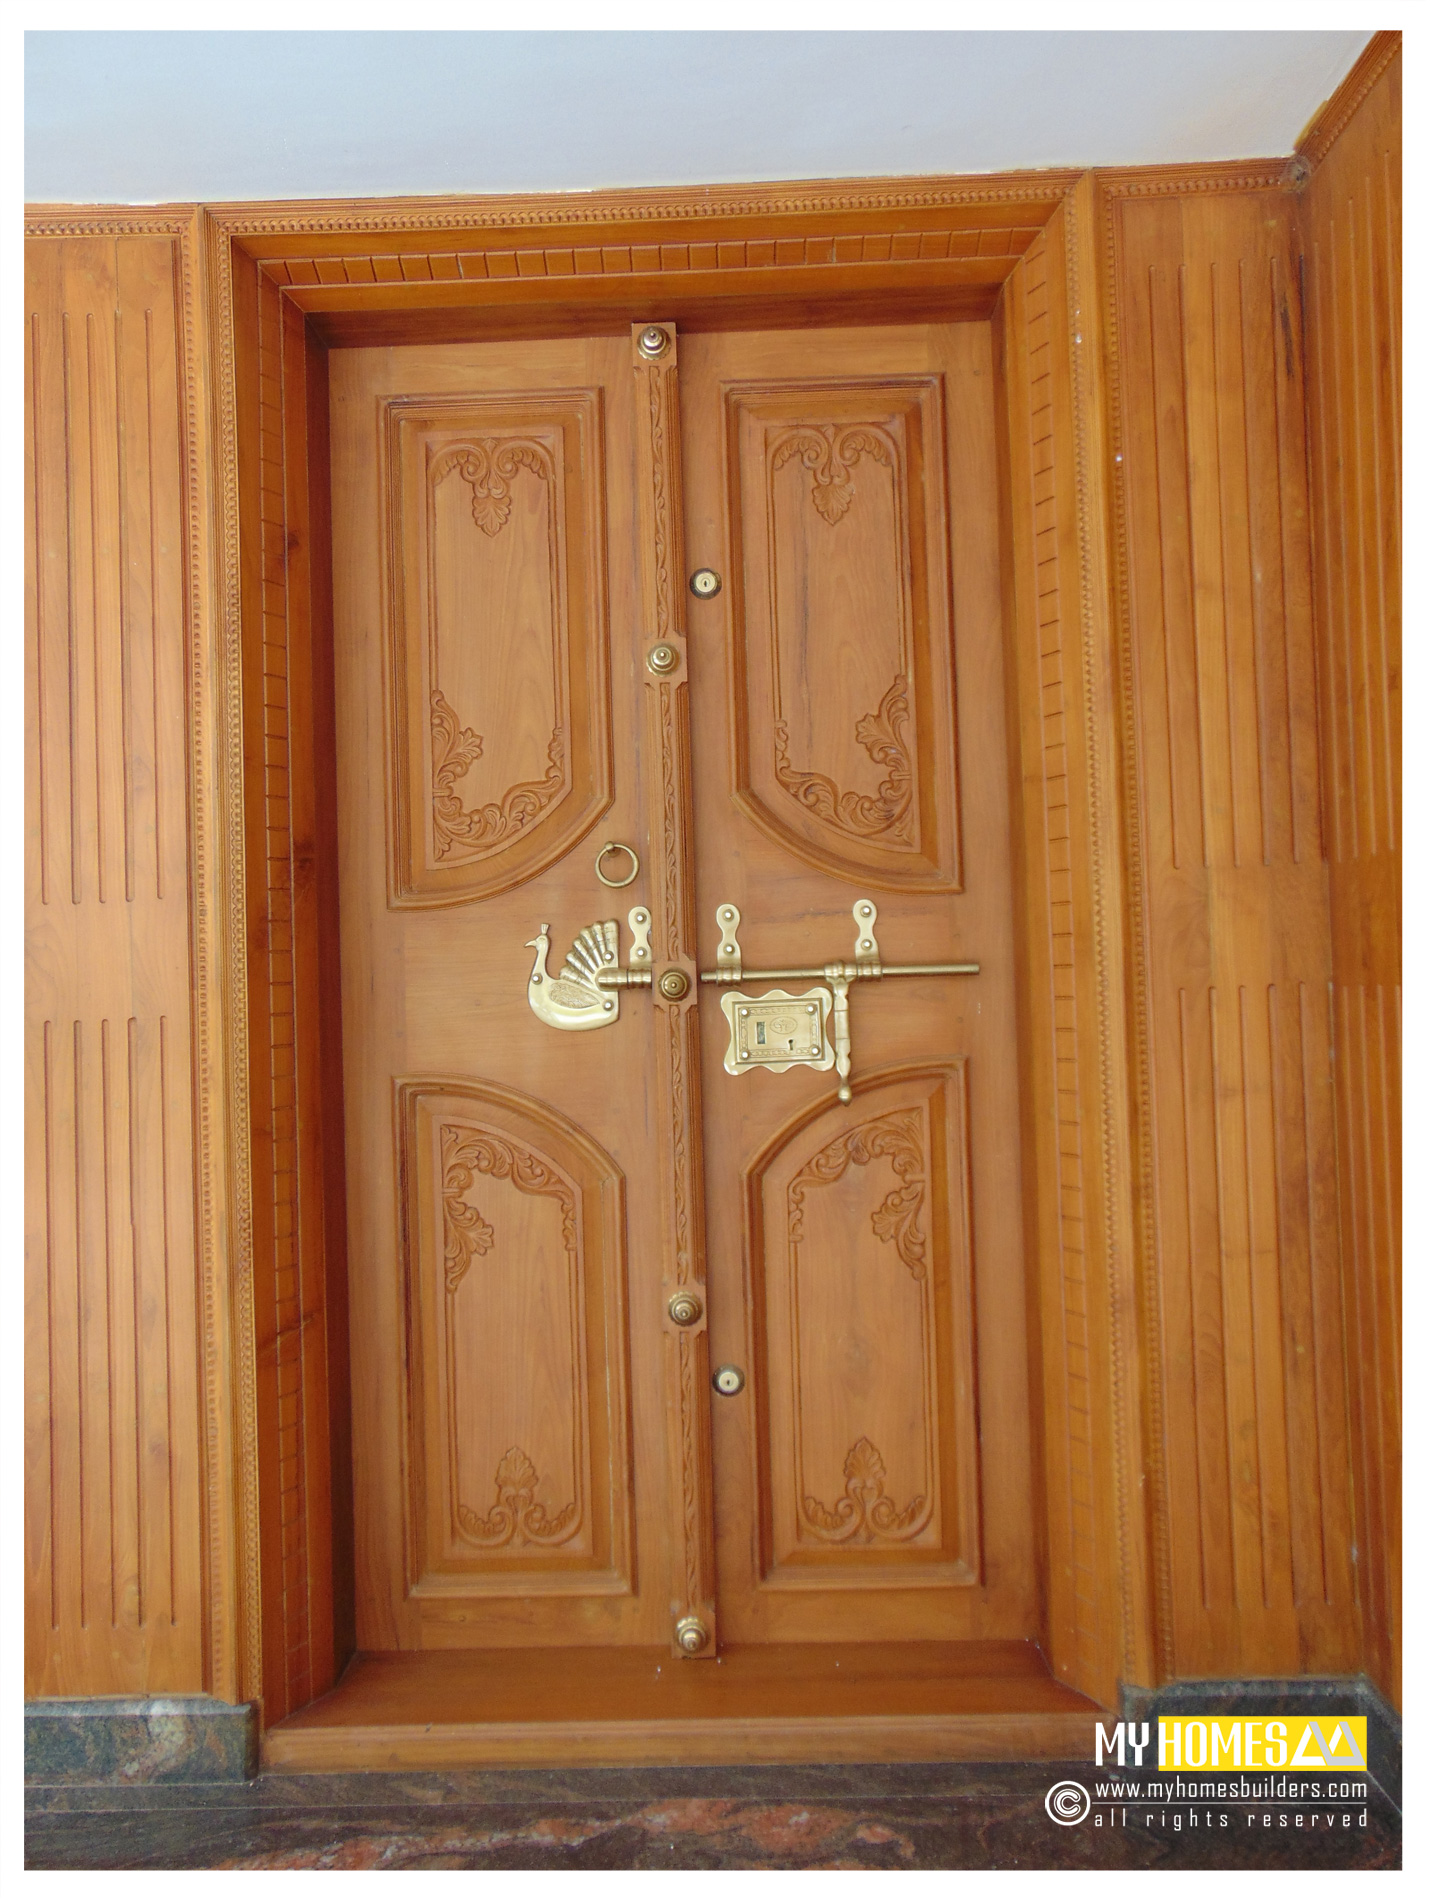 new idea for homes main door designs in kerala india On home door designs